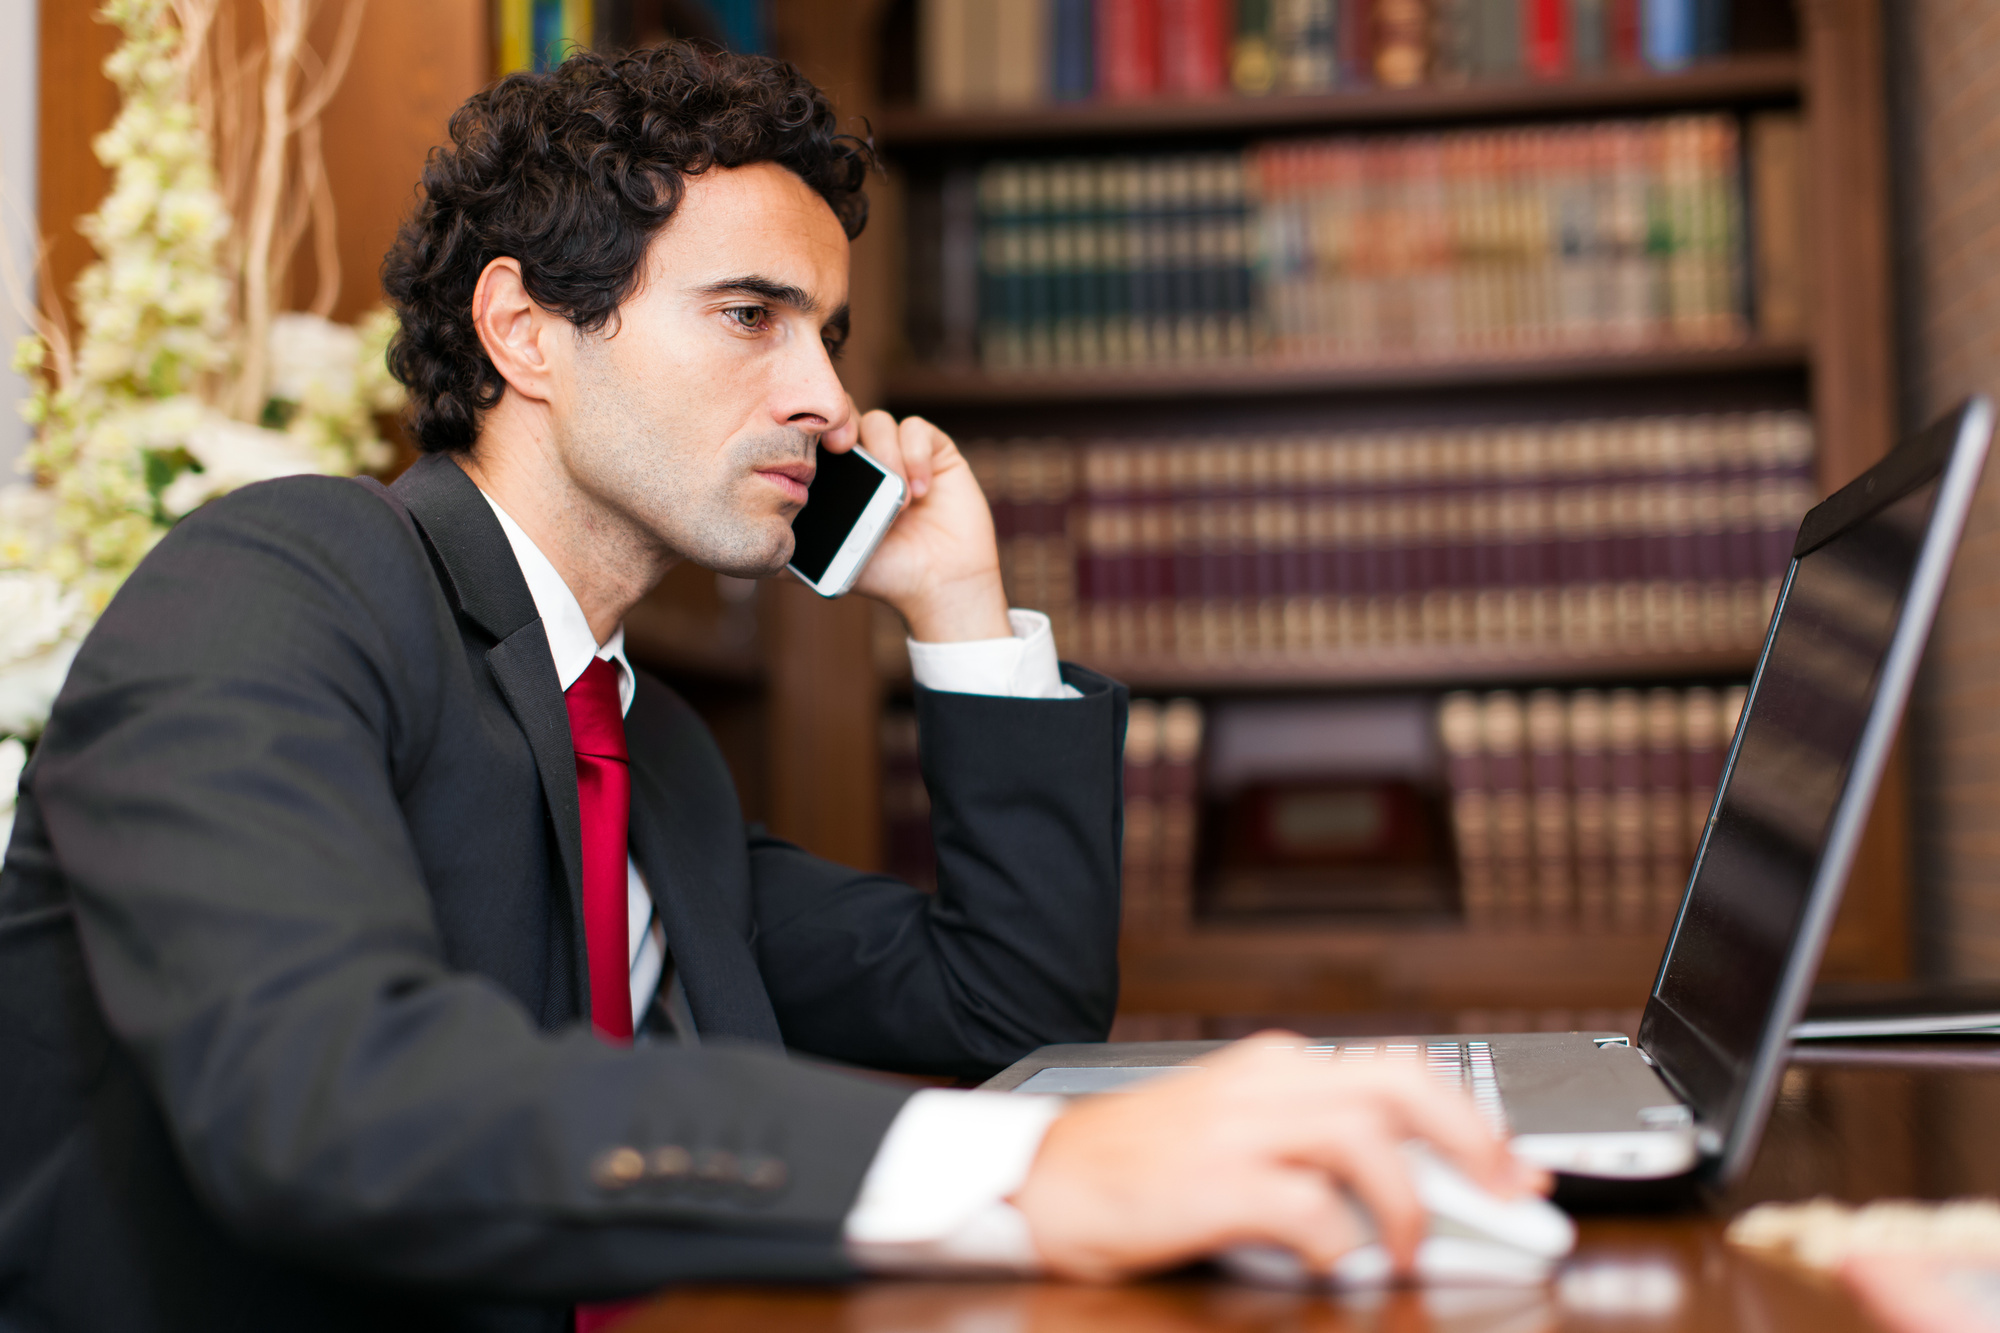 How to Be a Good Lawyer The Important Things to Know and Do